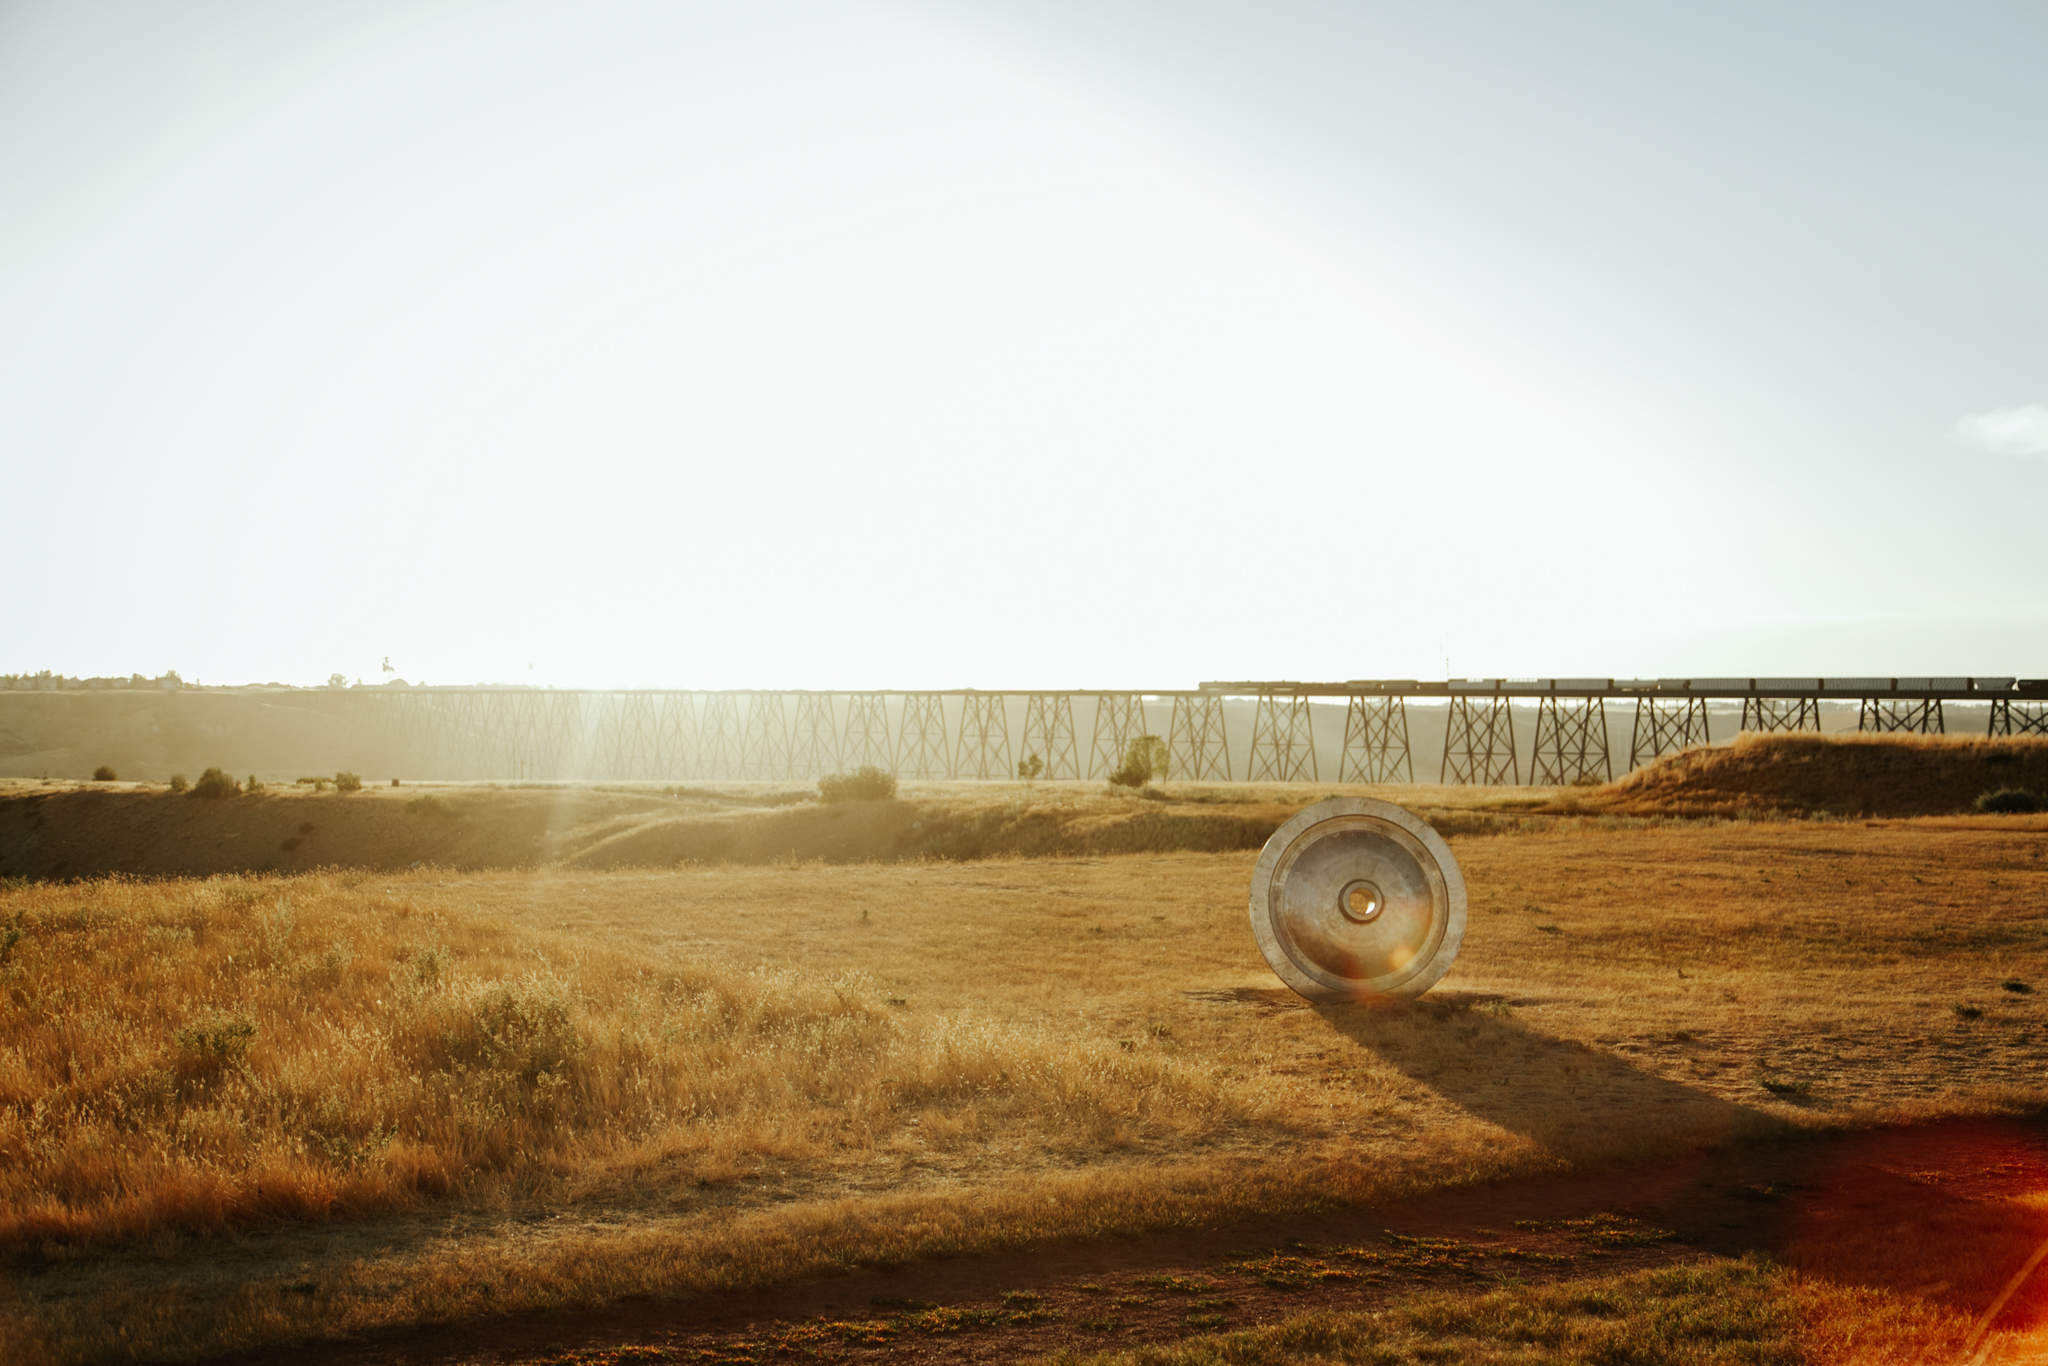 lethbridge-wedding-photographer-love-and-be-loved-photography-trent-danielle-galt-reception-picture-image-photo-229.jpg